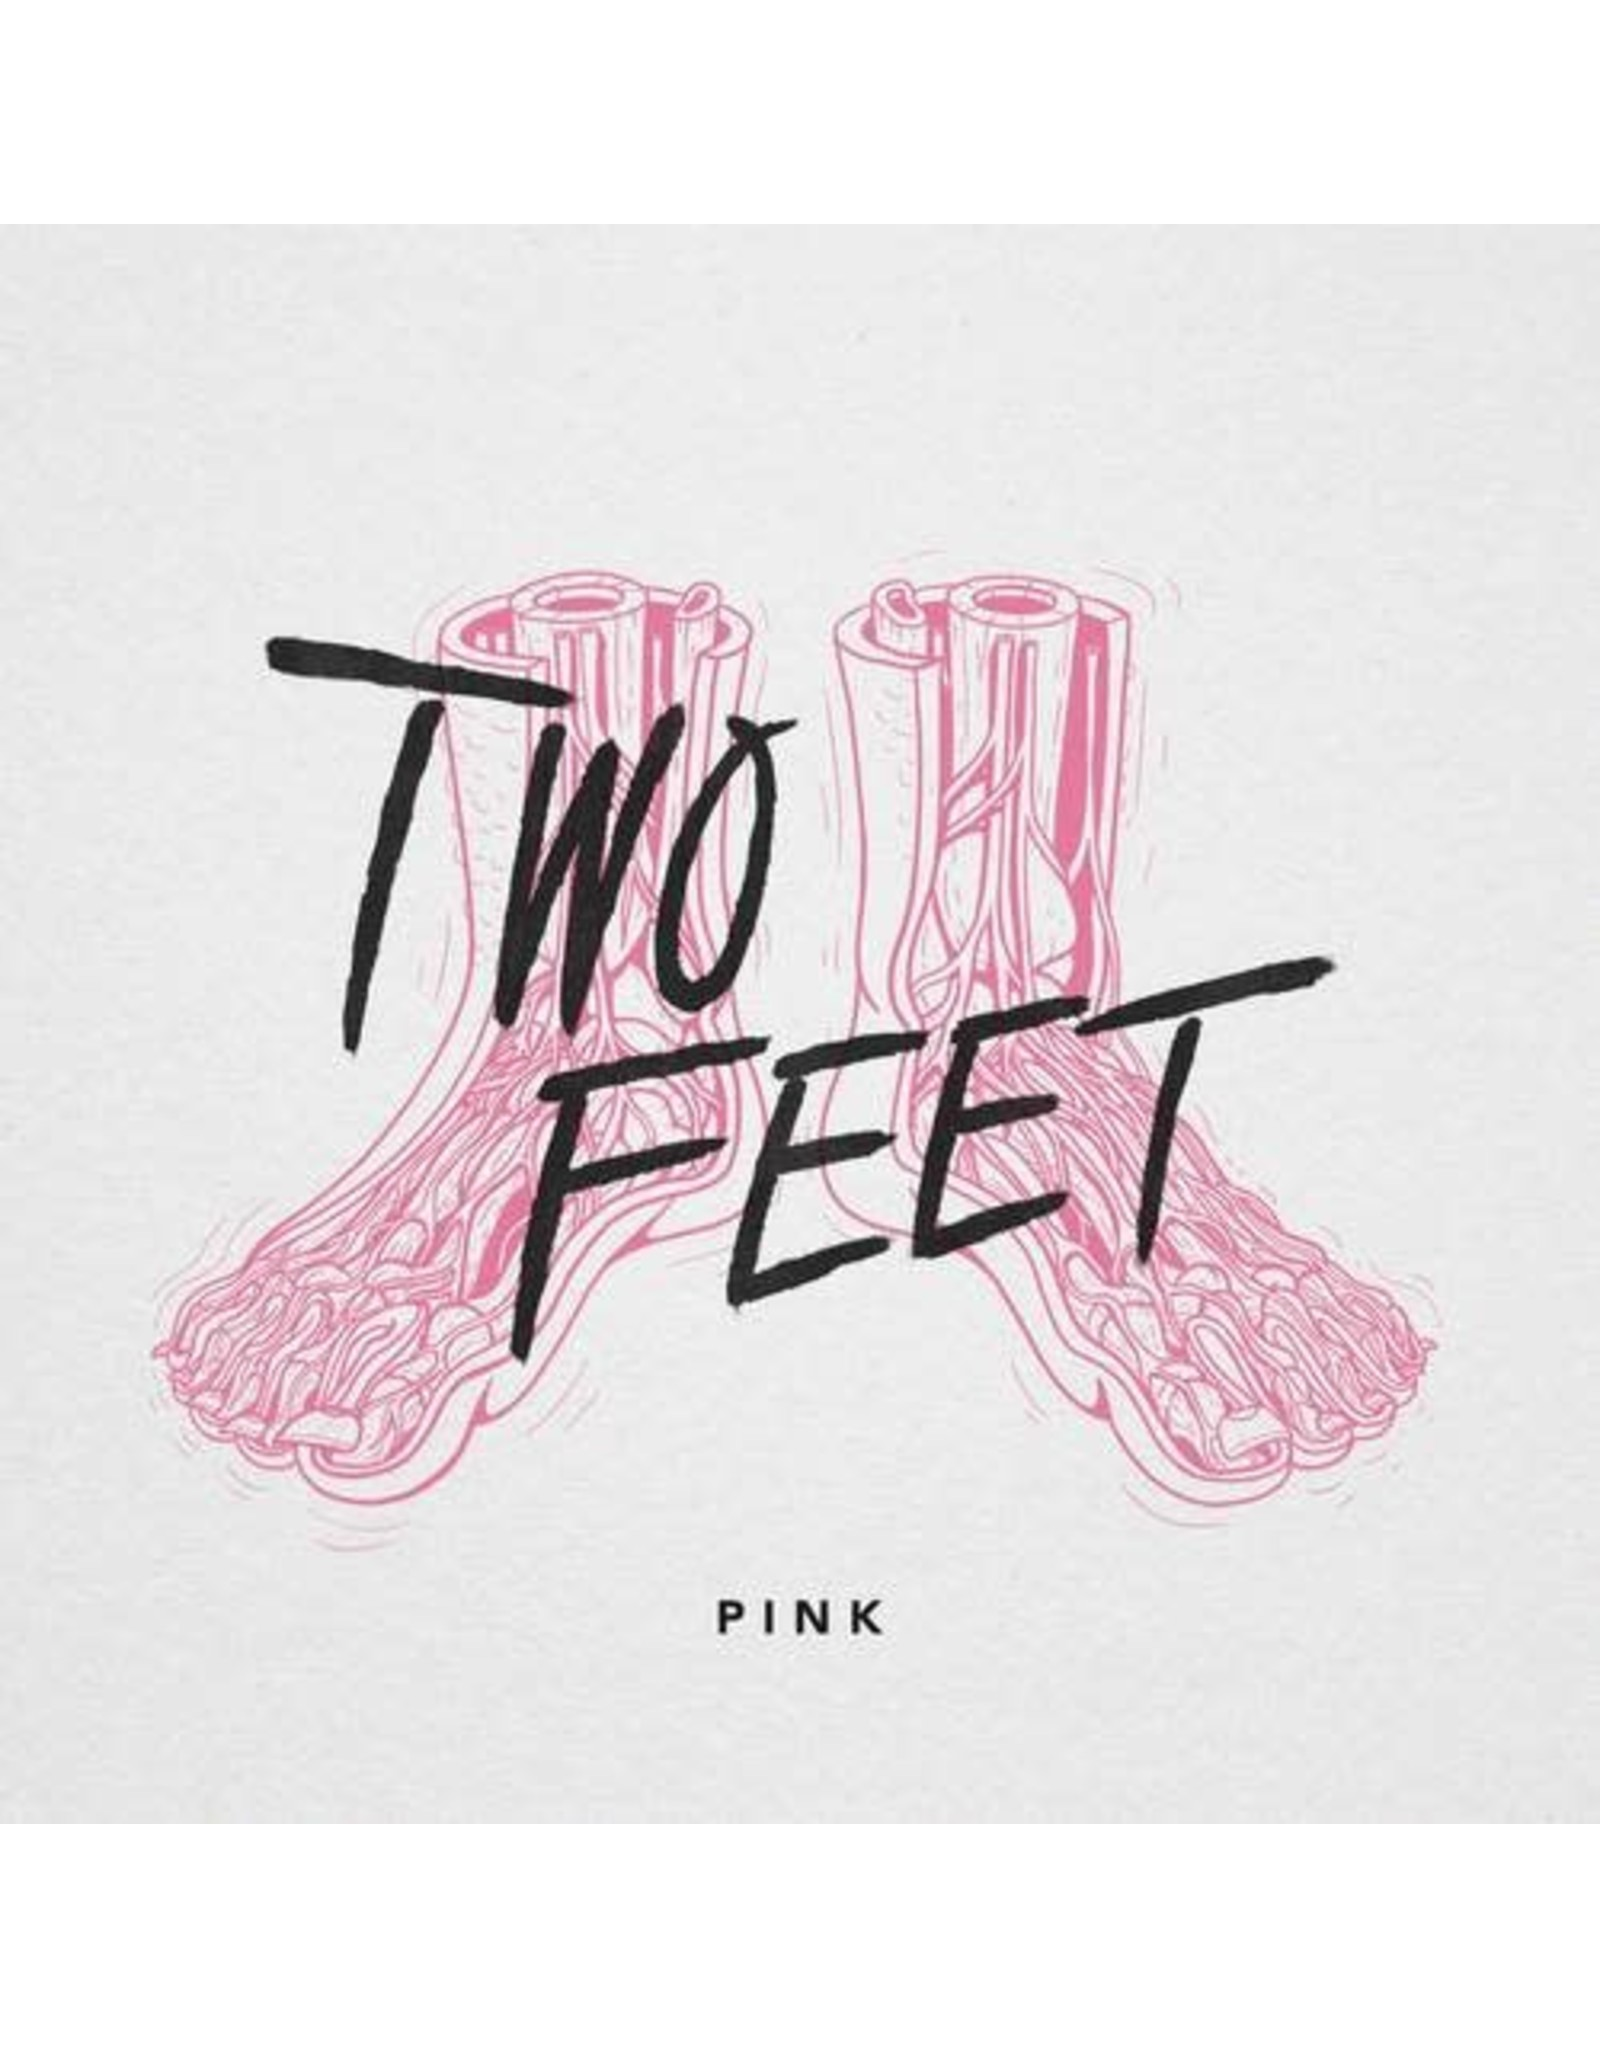 Two Feet - Pink LP